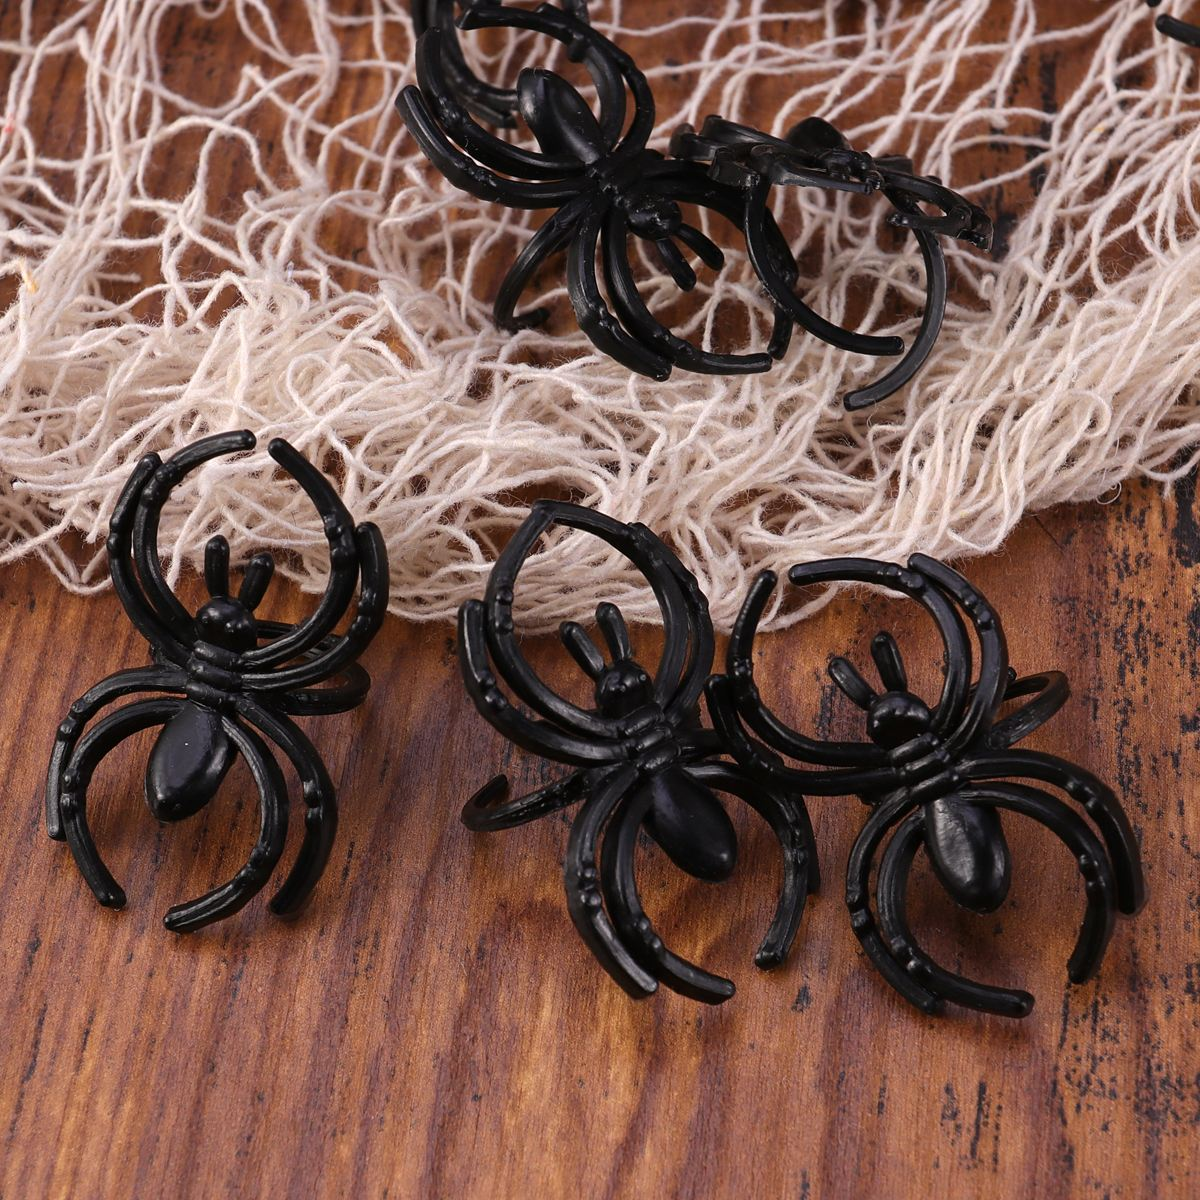 SPIDER RINGS HALLOWEEN COSTUME JEWELRY ~ Birthday Party Supplies one size